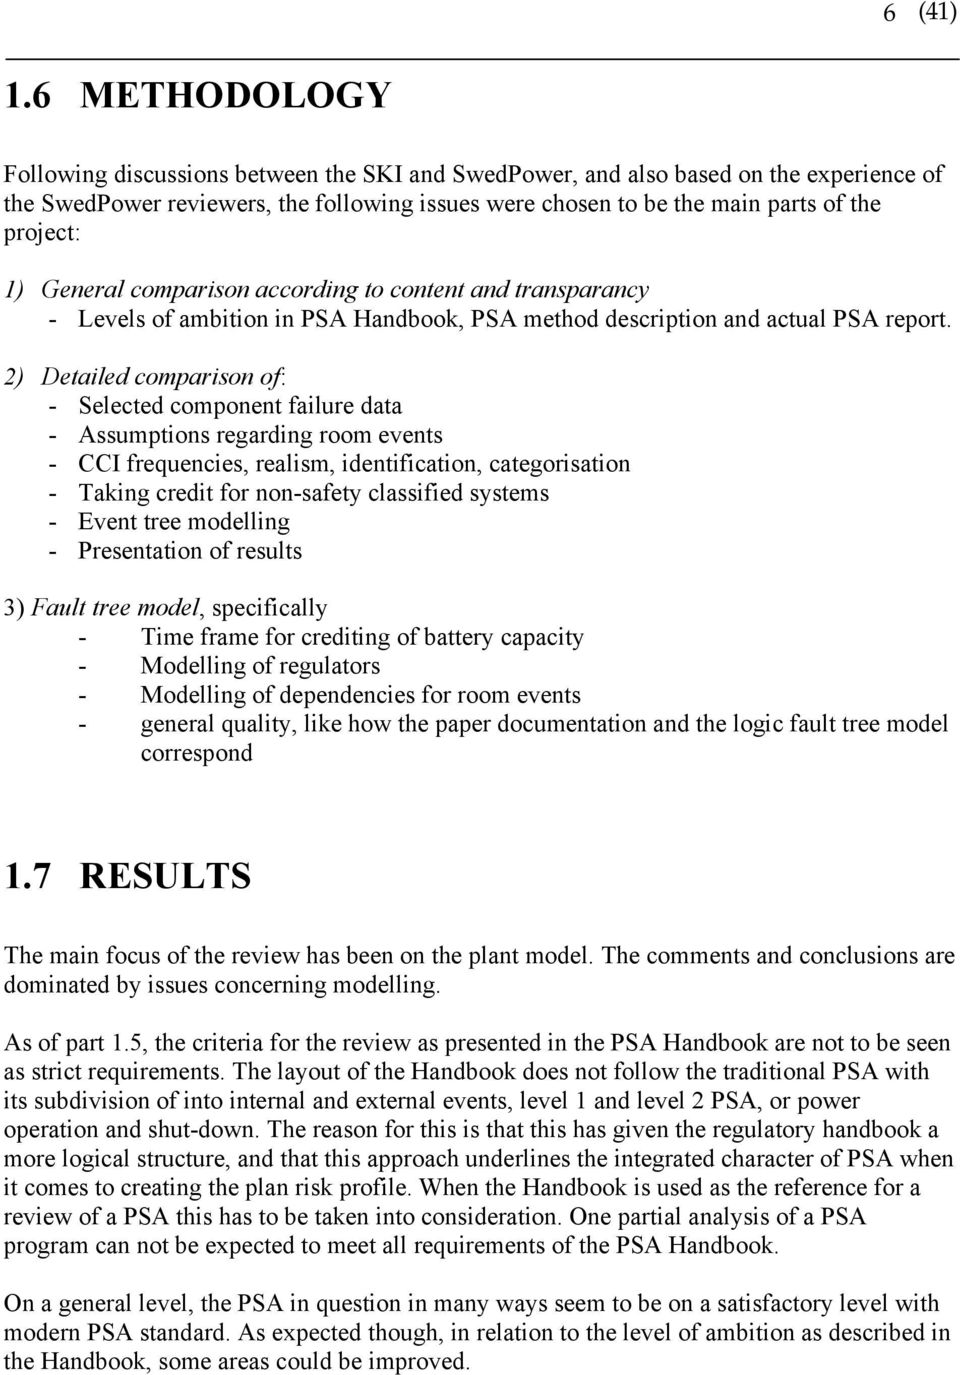 1) General comparison according to content and transparancy - Levels of ambition in PSA Handbook, PSA method description and actual PSA report.